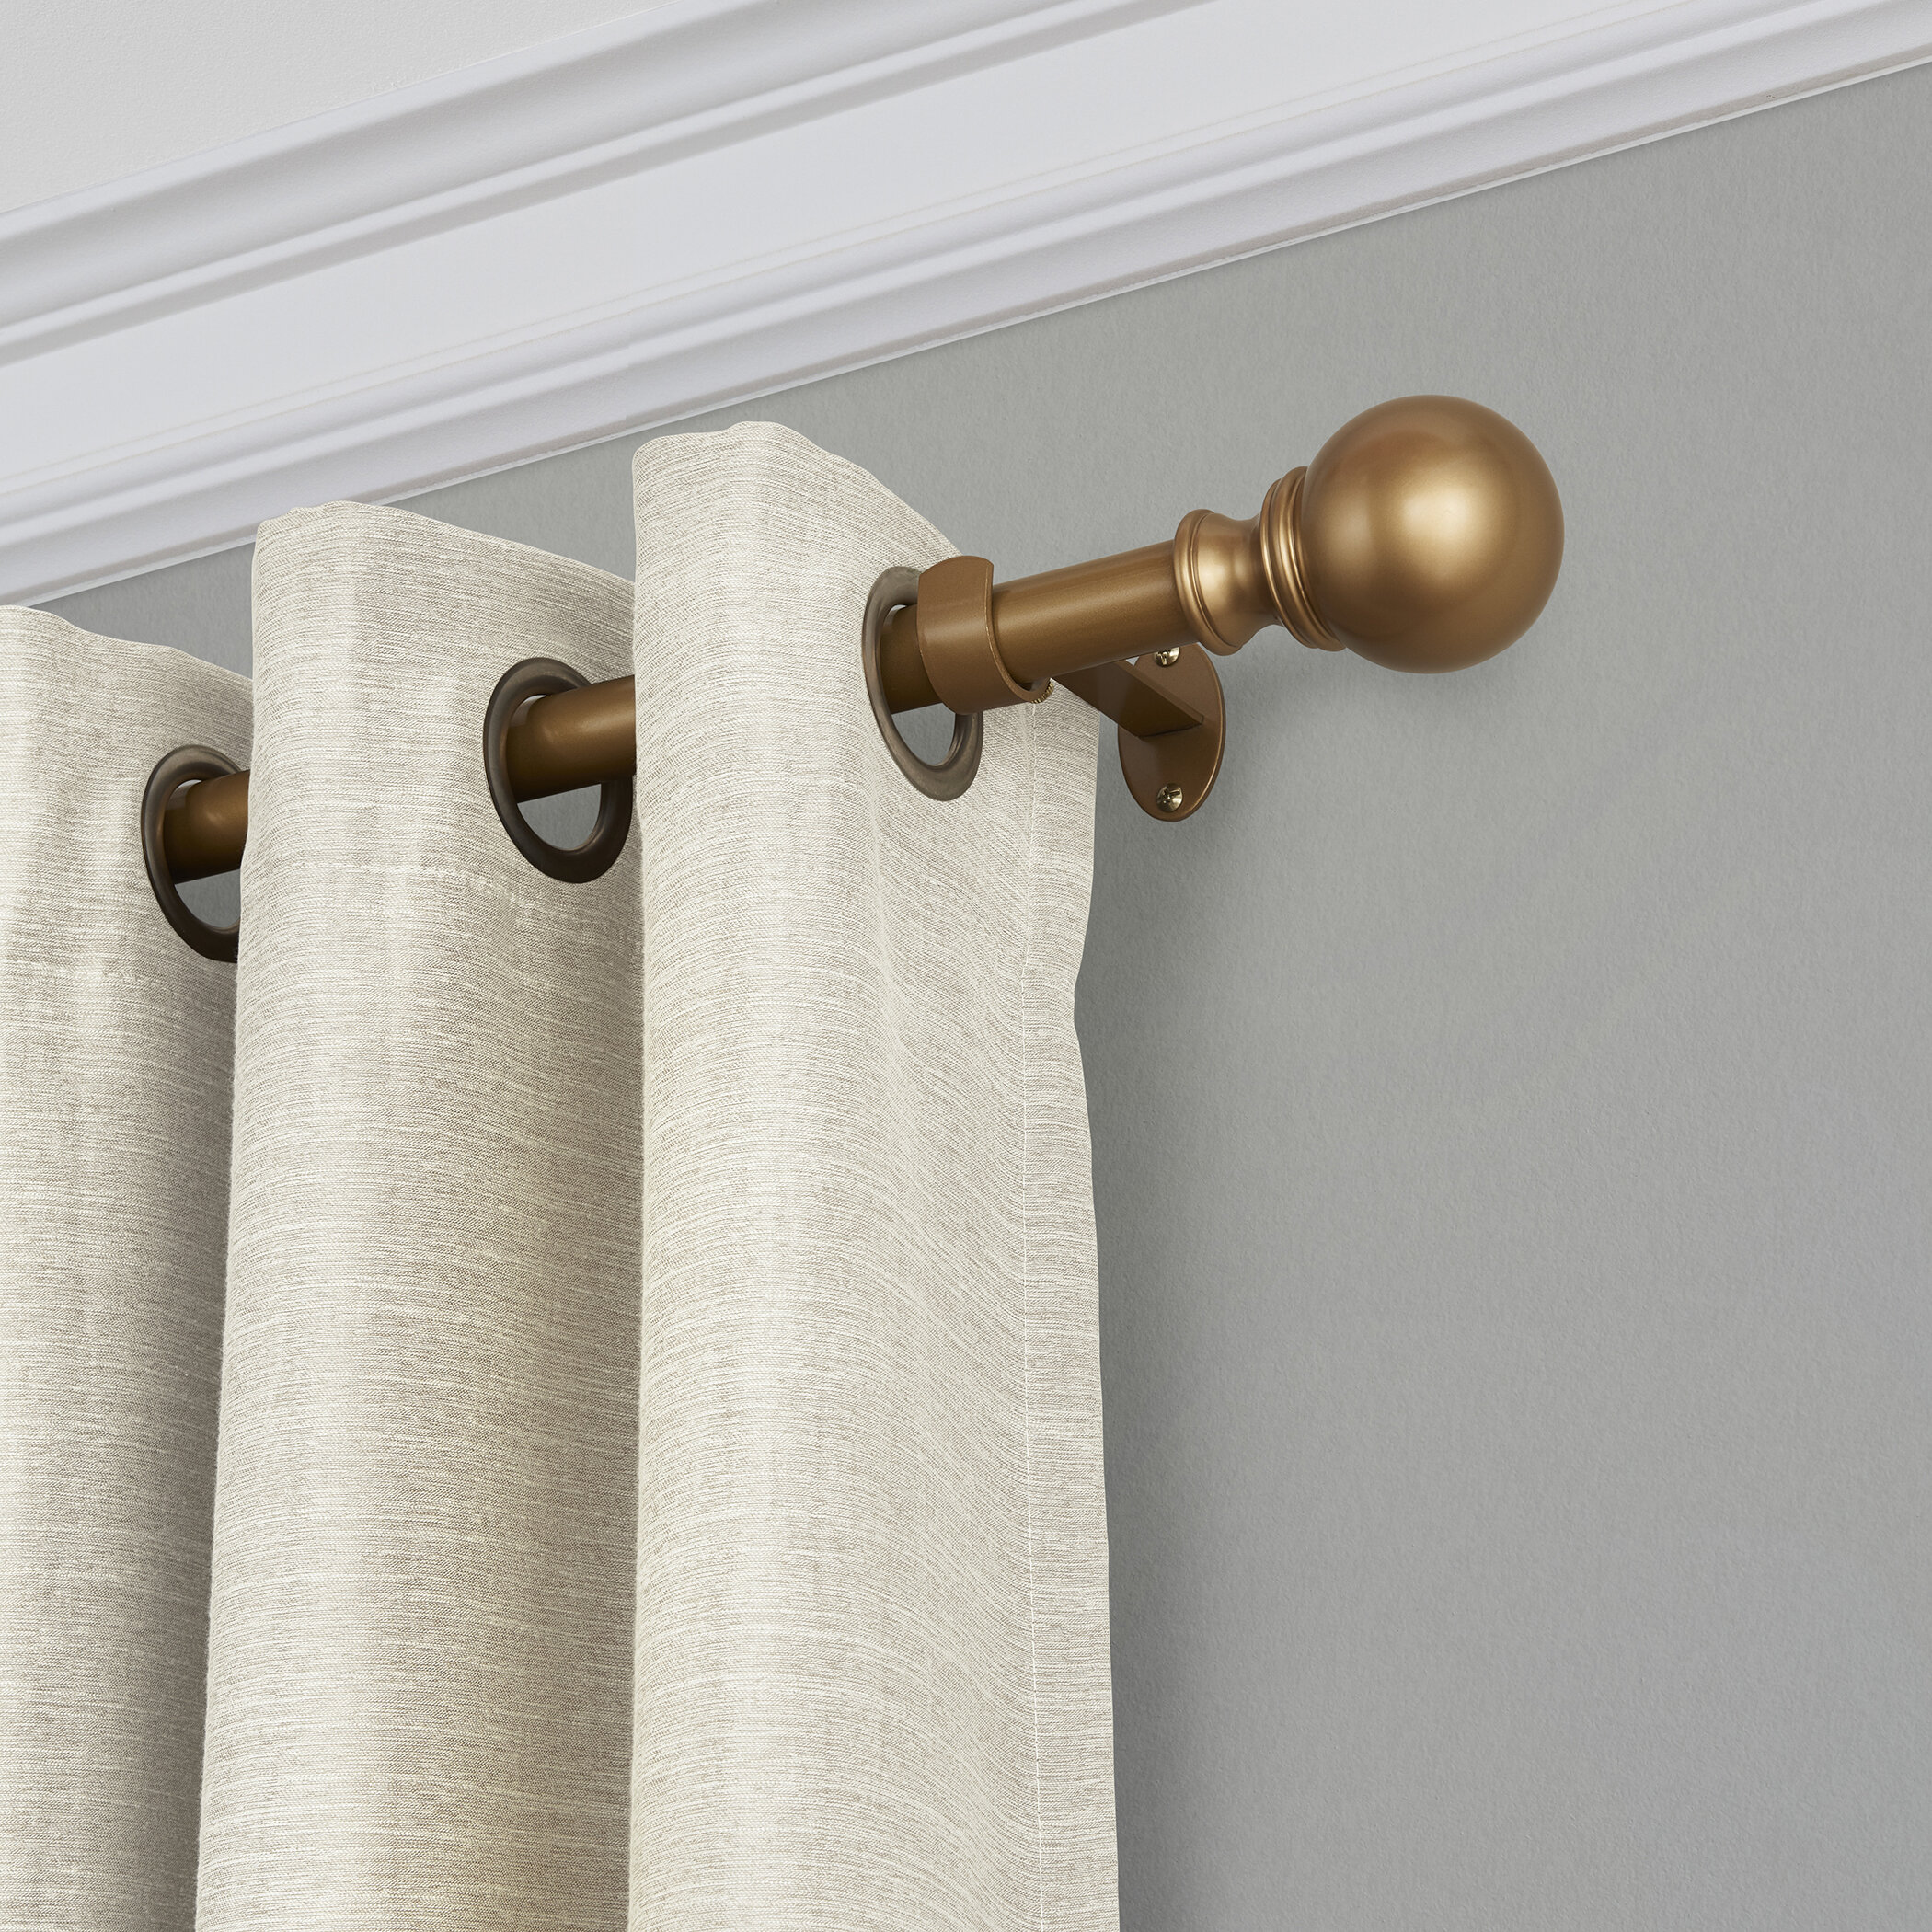 Alcott Hill Darion Adjustable Single Curtain Rod Reviews Wayfair